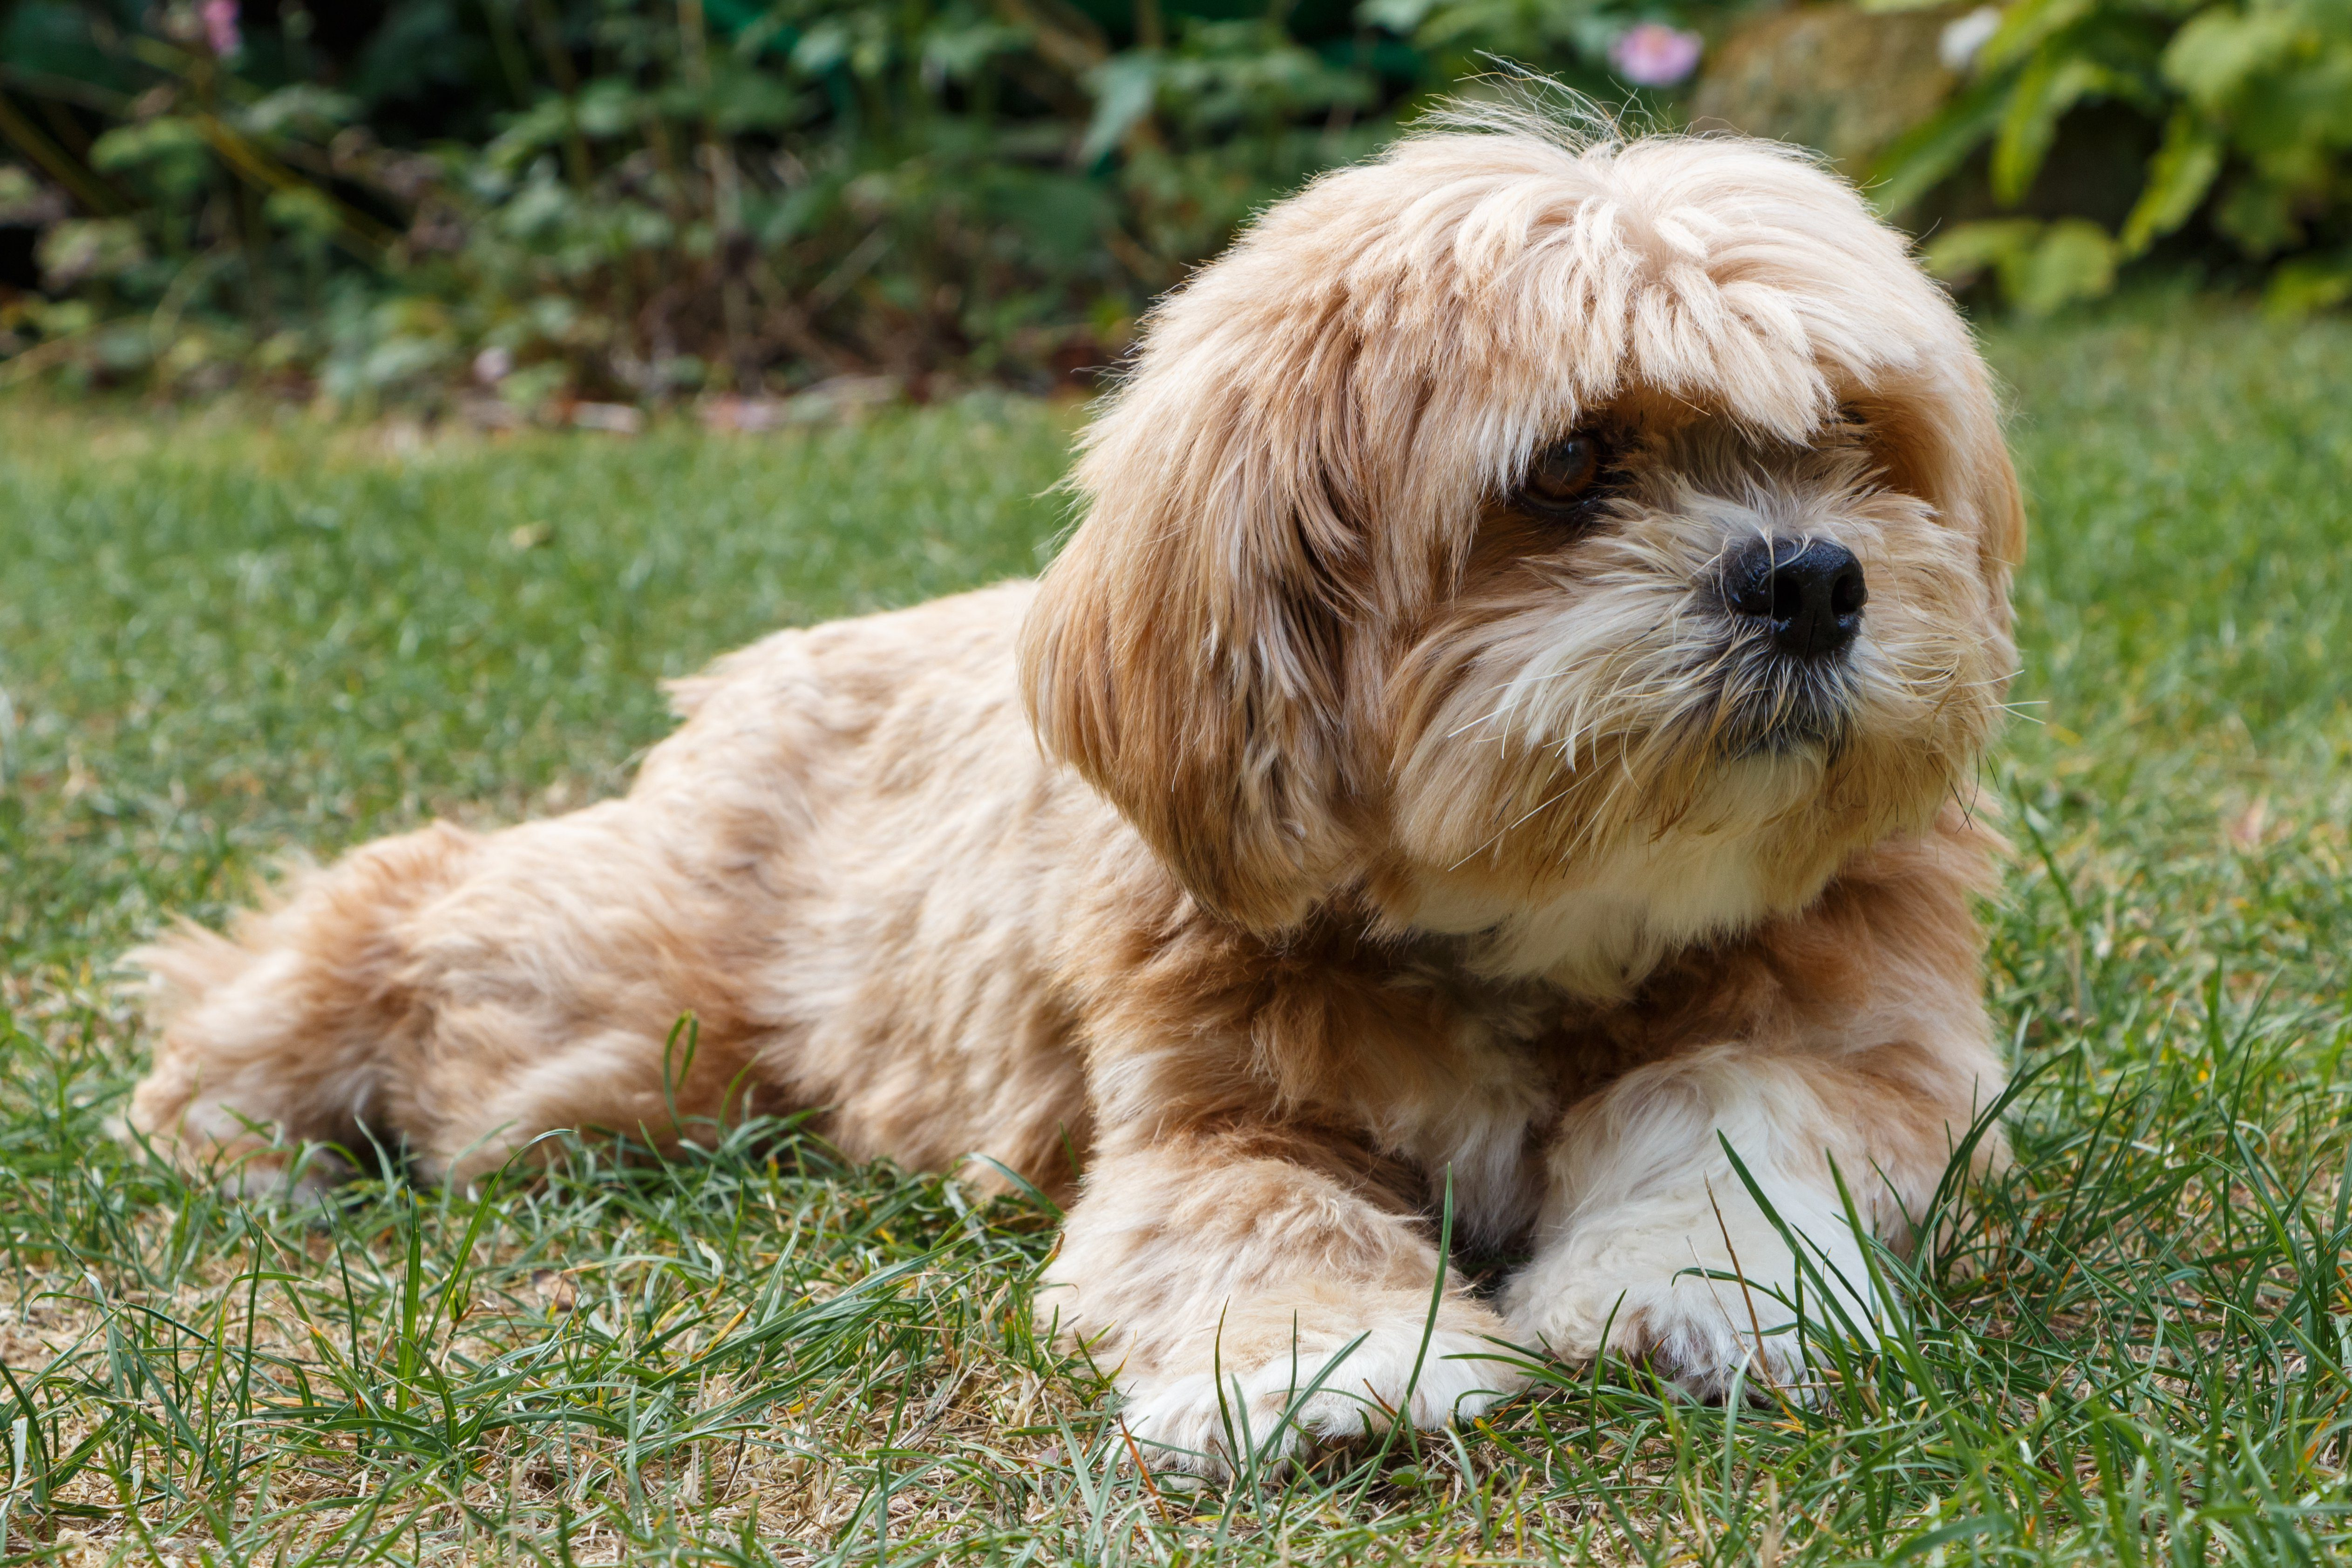 Lhasa Apso dog lying in the grass of a garden